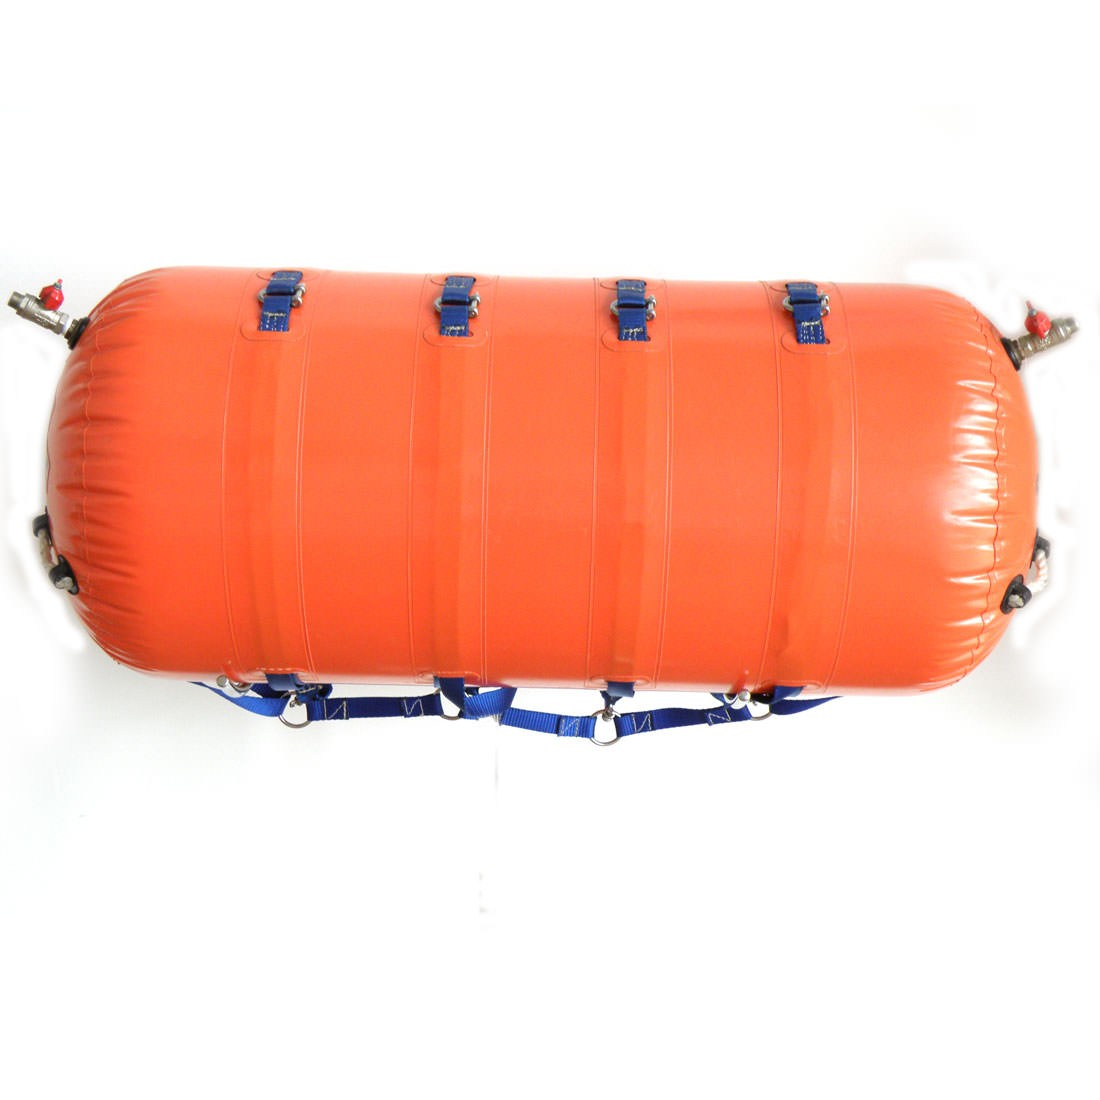 Seaflex Inflatable Buoyancy Unit 4,409 lbs 2,000 kg Lift Capacity SEF-2TIBU-016